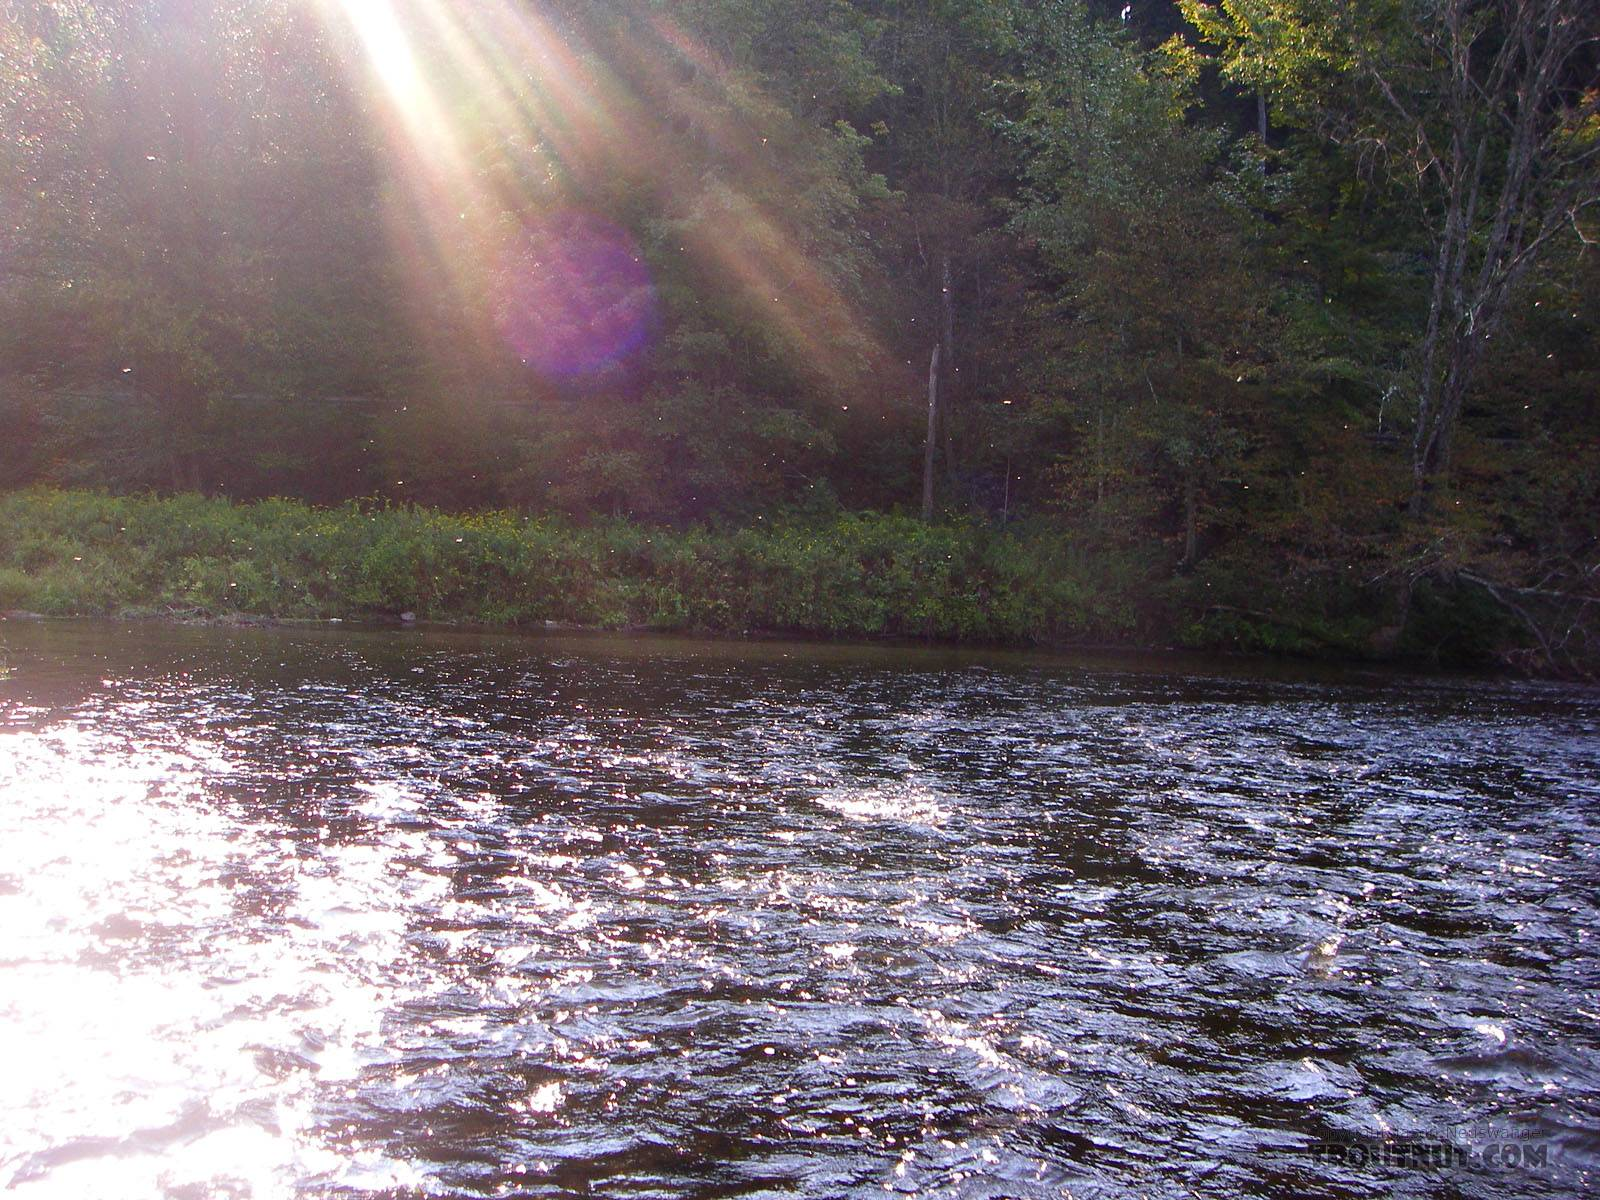 Twinkling Tricos in the air. From the Neversink River in New York.